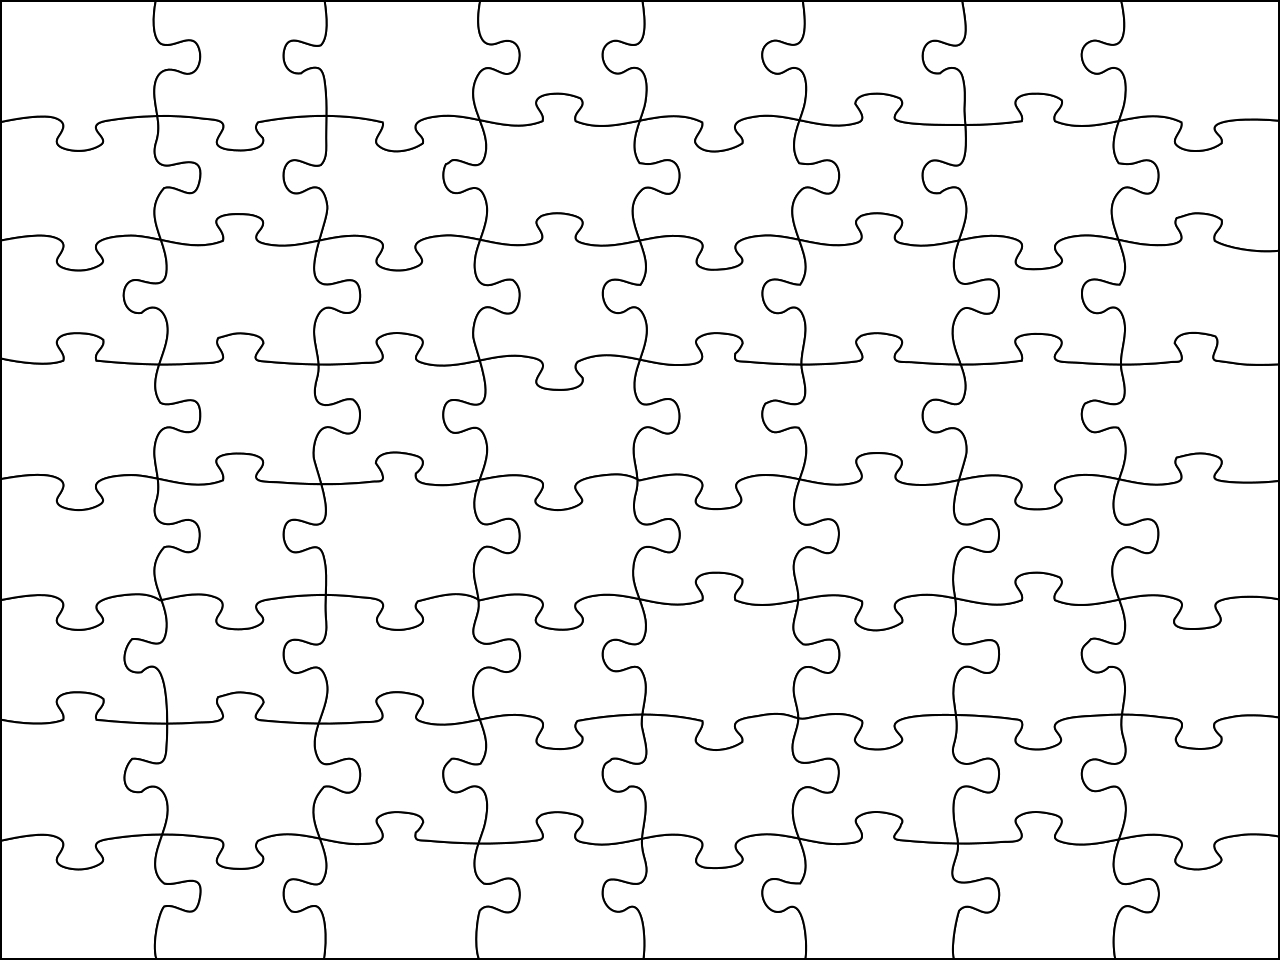 Jigsaw Puzzle Maker Free Printable | Free Printables - Printable Jigsaw Puzzle Maker